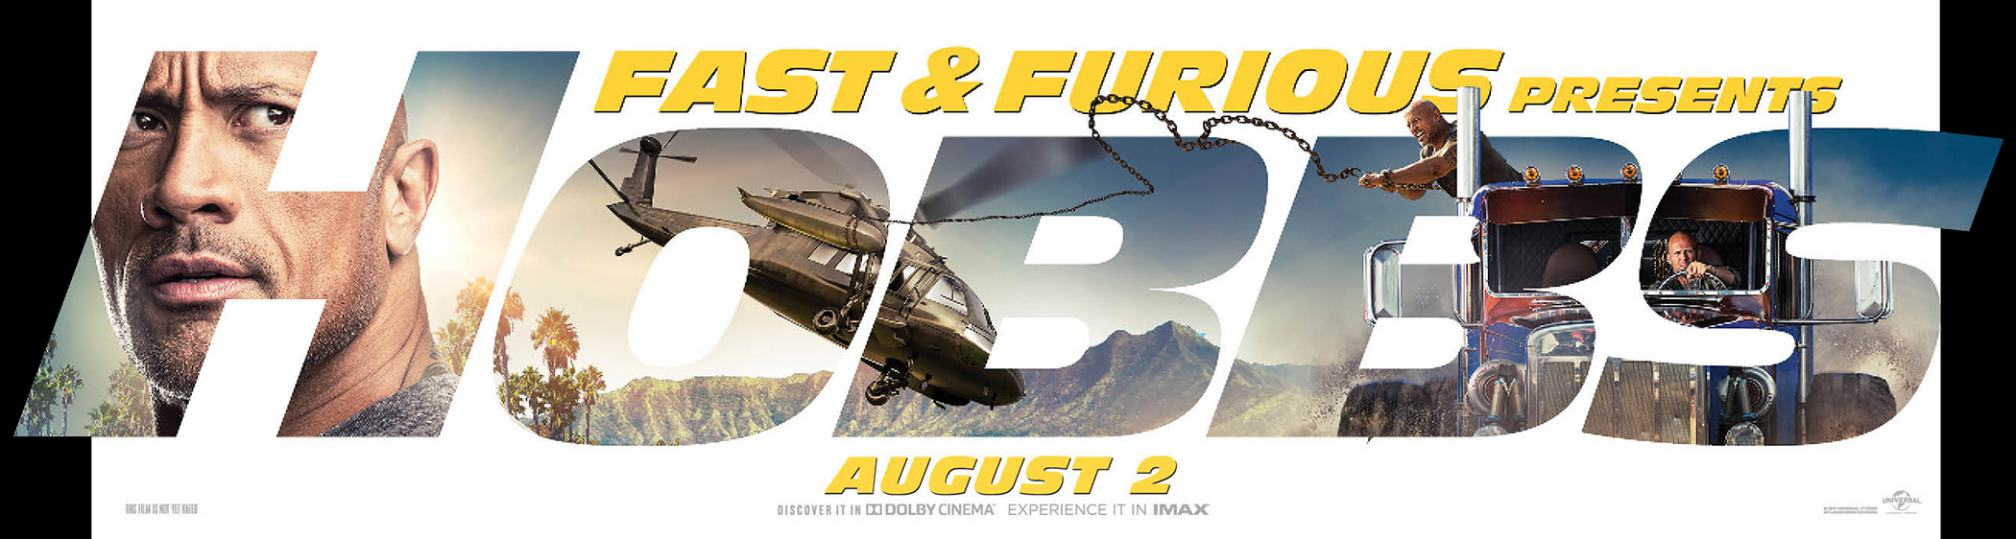 Fast & Furious Presents: Hobbs & Shaw Poster #7